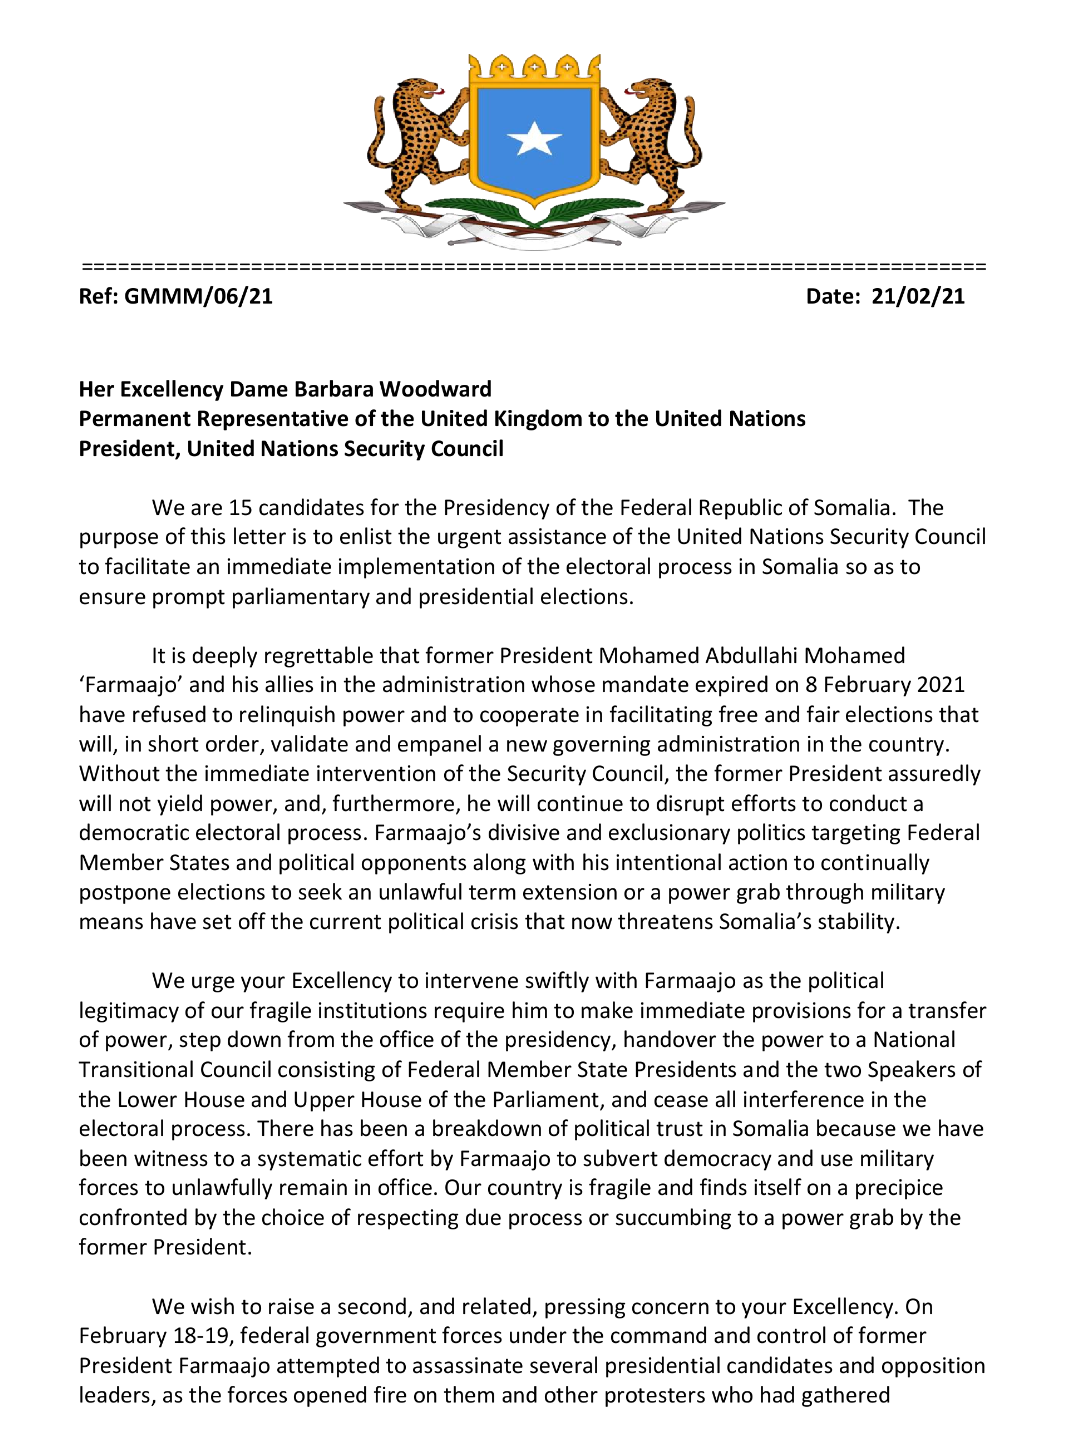 POLITICAL LEADERS OF HAWIYE WROTE A LETTER TO UN DECRYING FARMAAJO'S OFFENSIVE